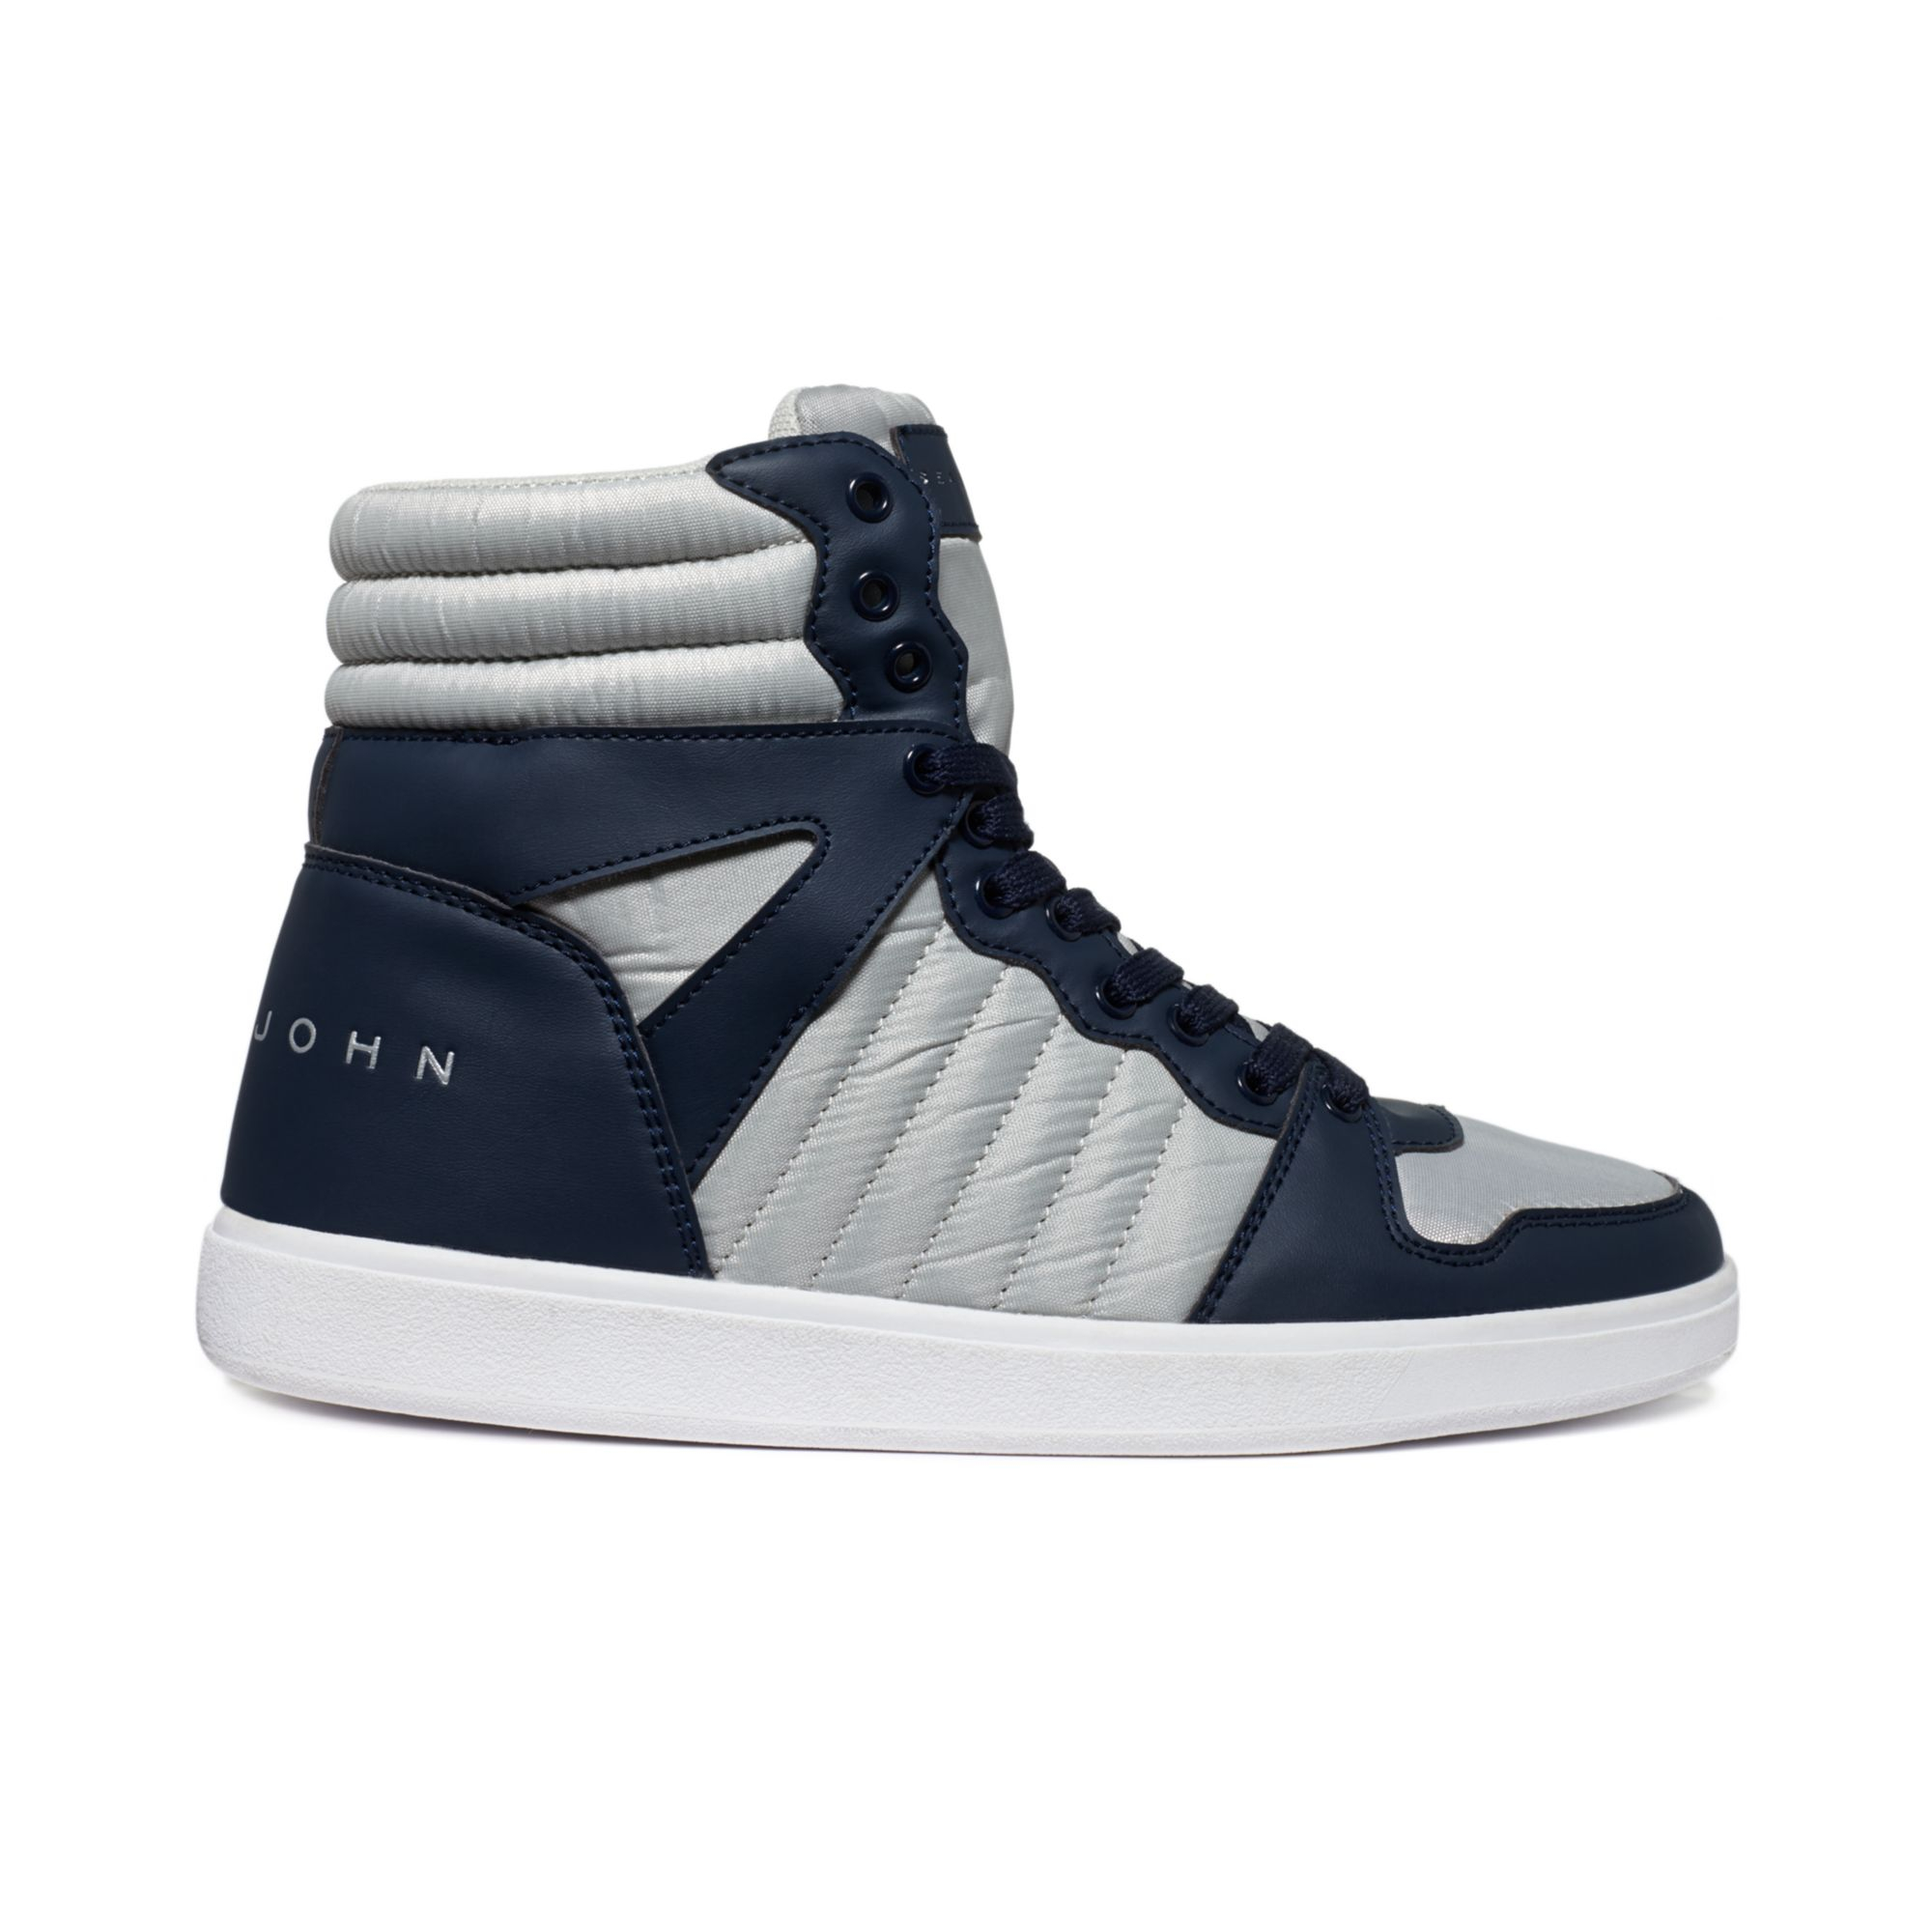 Sean John Murano Hi Top Sneakers In Blue For Men Navy